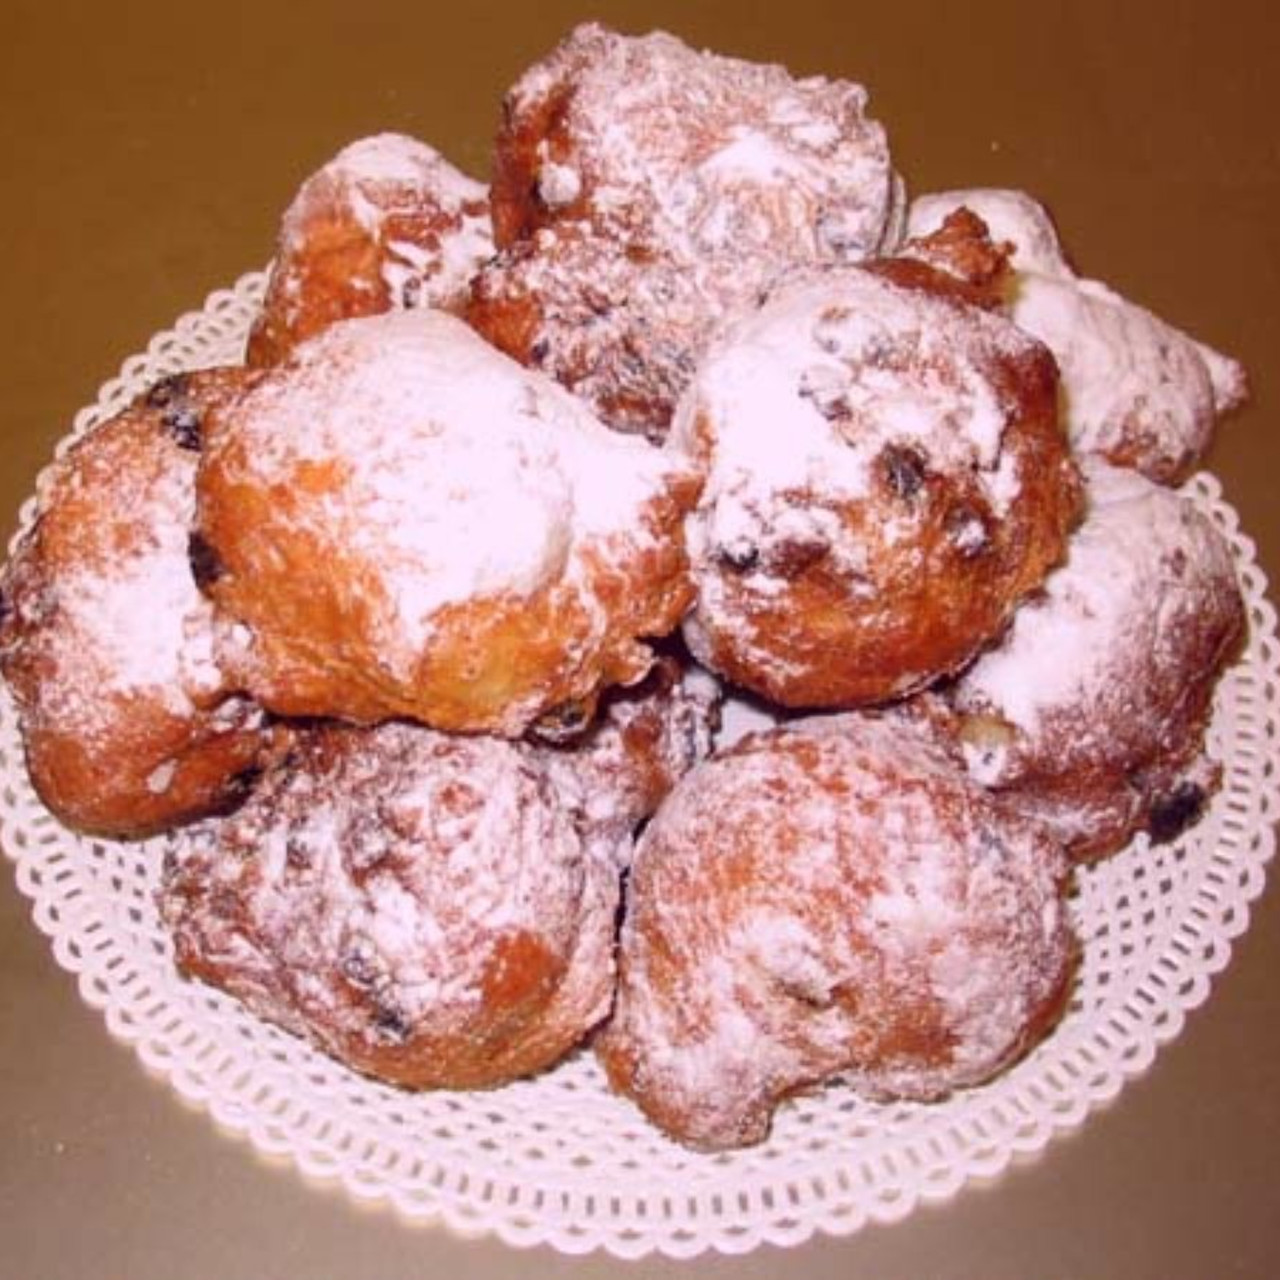 Try This Oliebollen Dutch Doughnuts Recipe Or Contribute Your Own